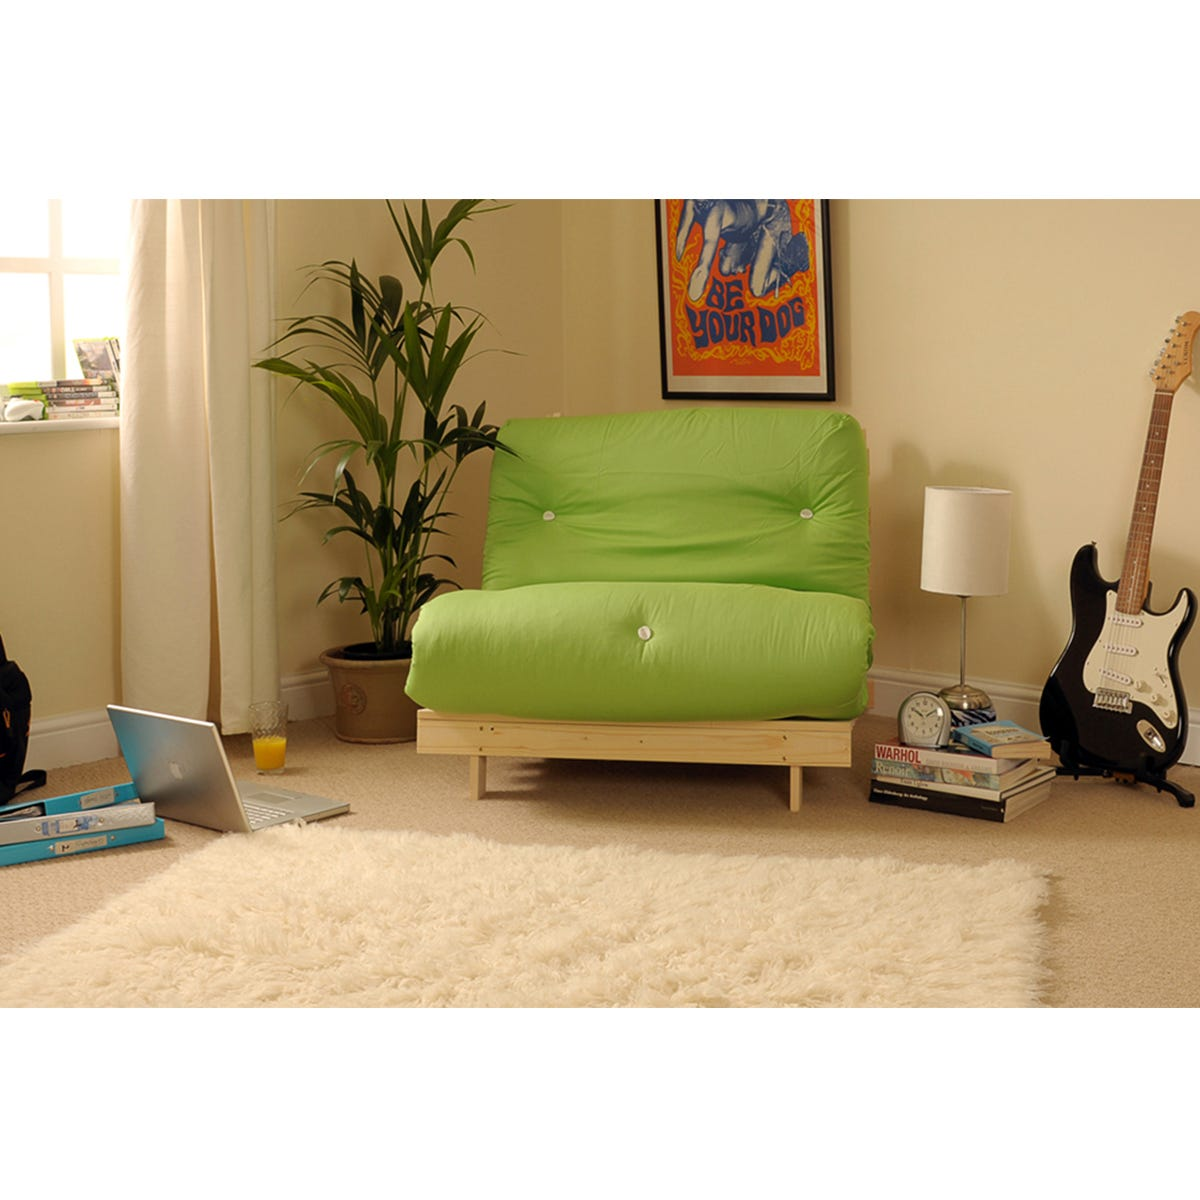 Albury Lime Sofa Bed Set With Tufted Mattress - Small Single